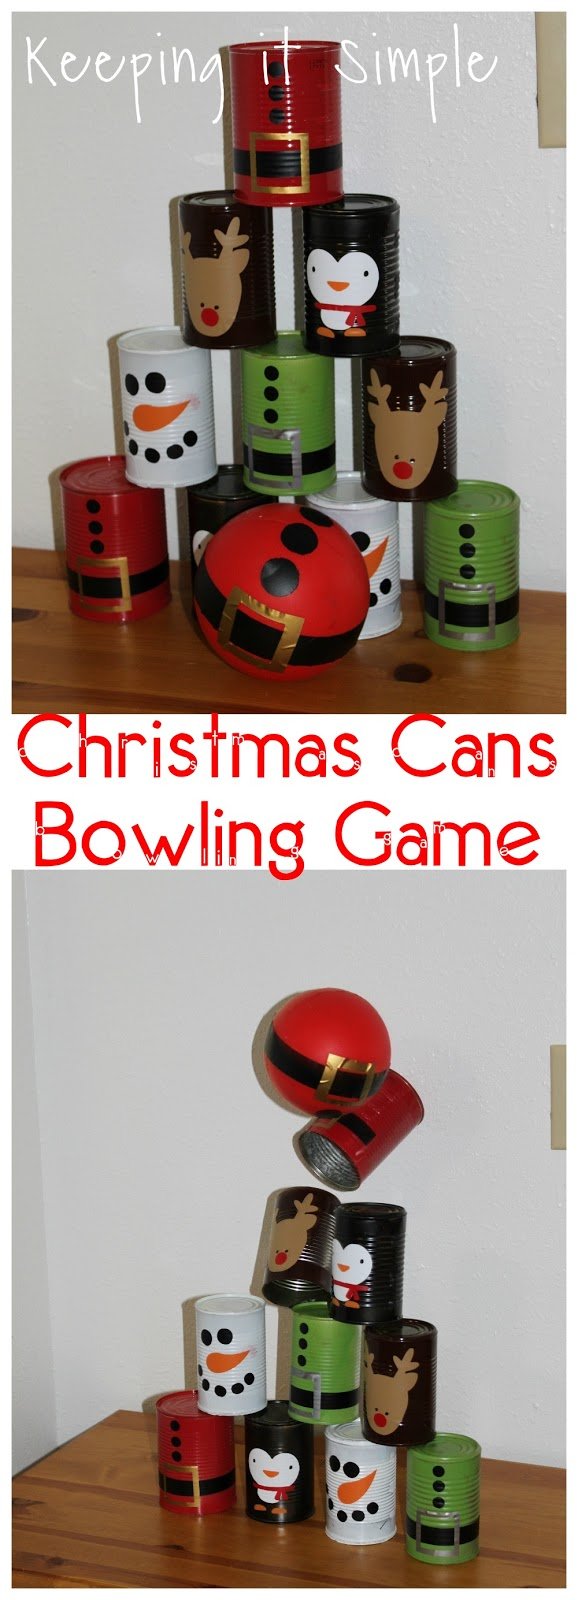 15 Classroom Party Games for the holidays with kids - www.kidfriendlythingstodo.com